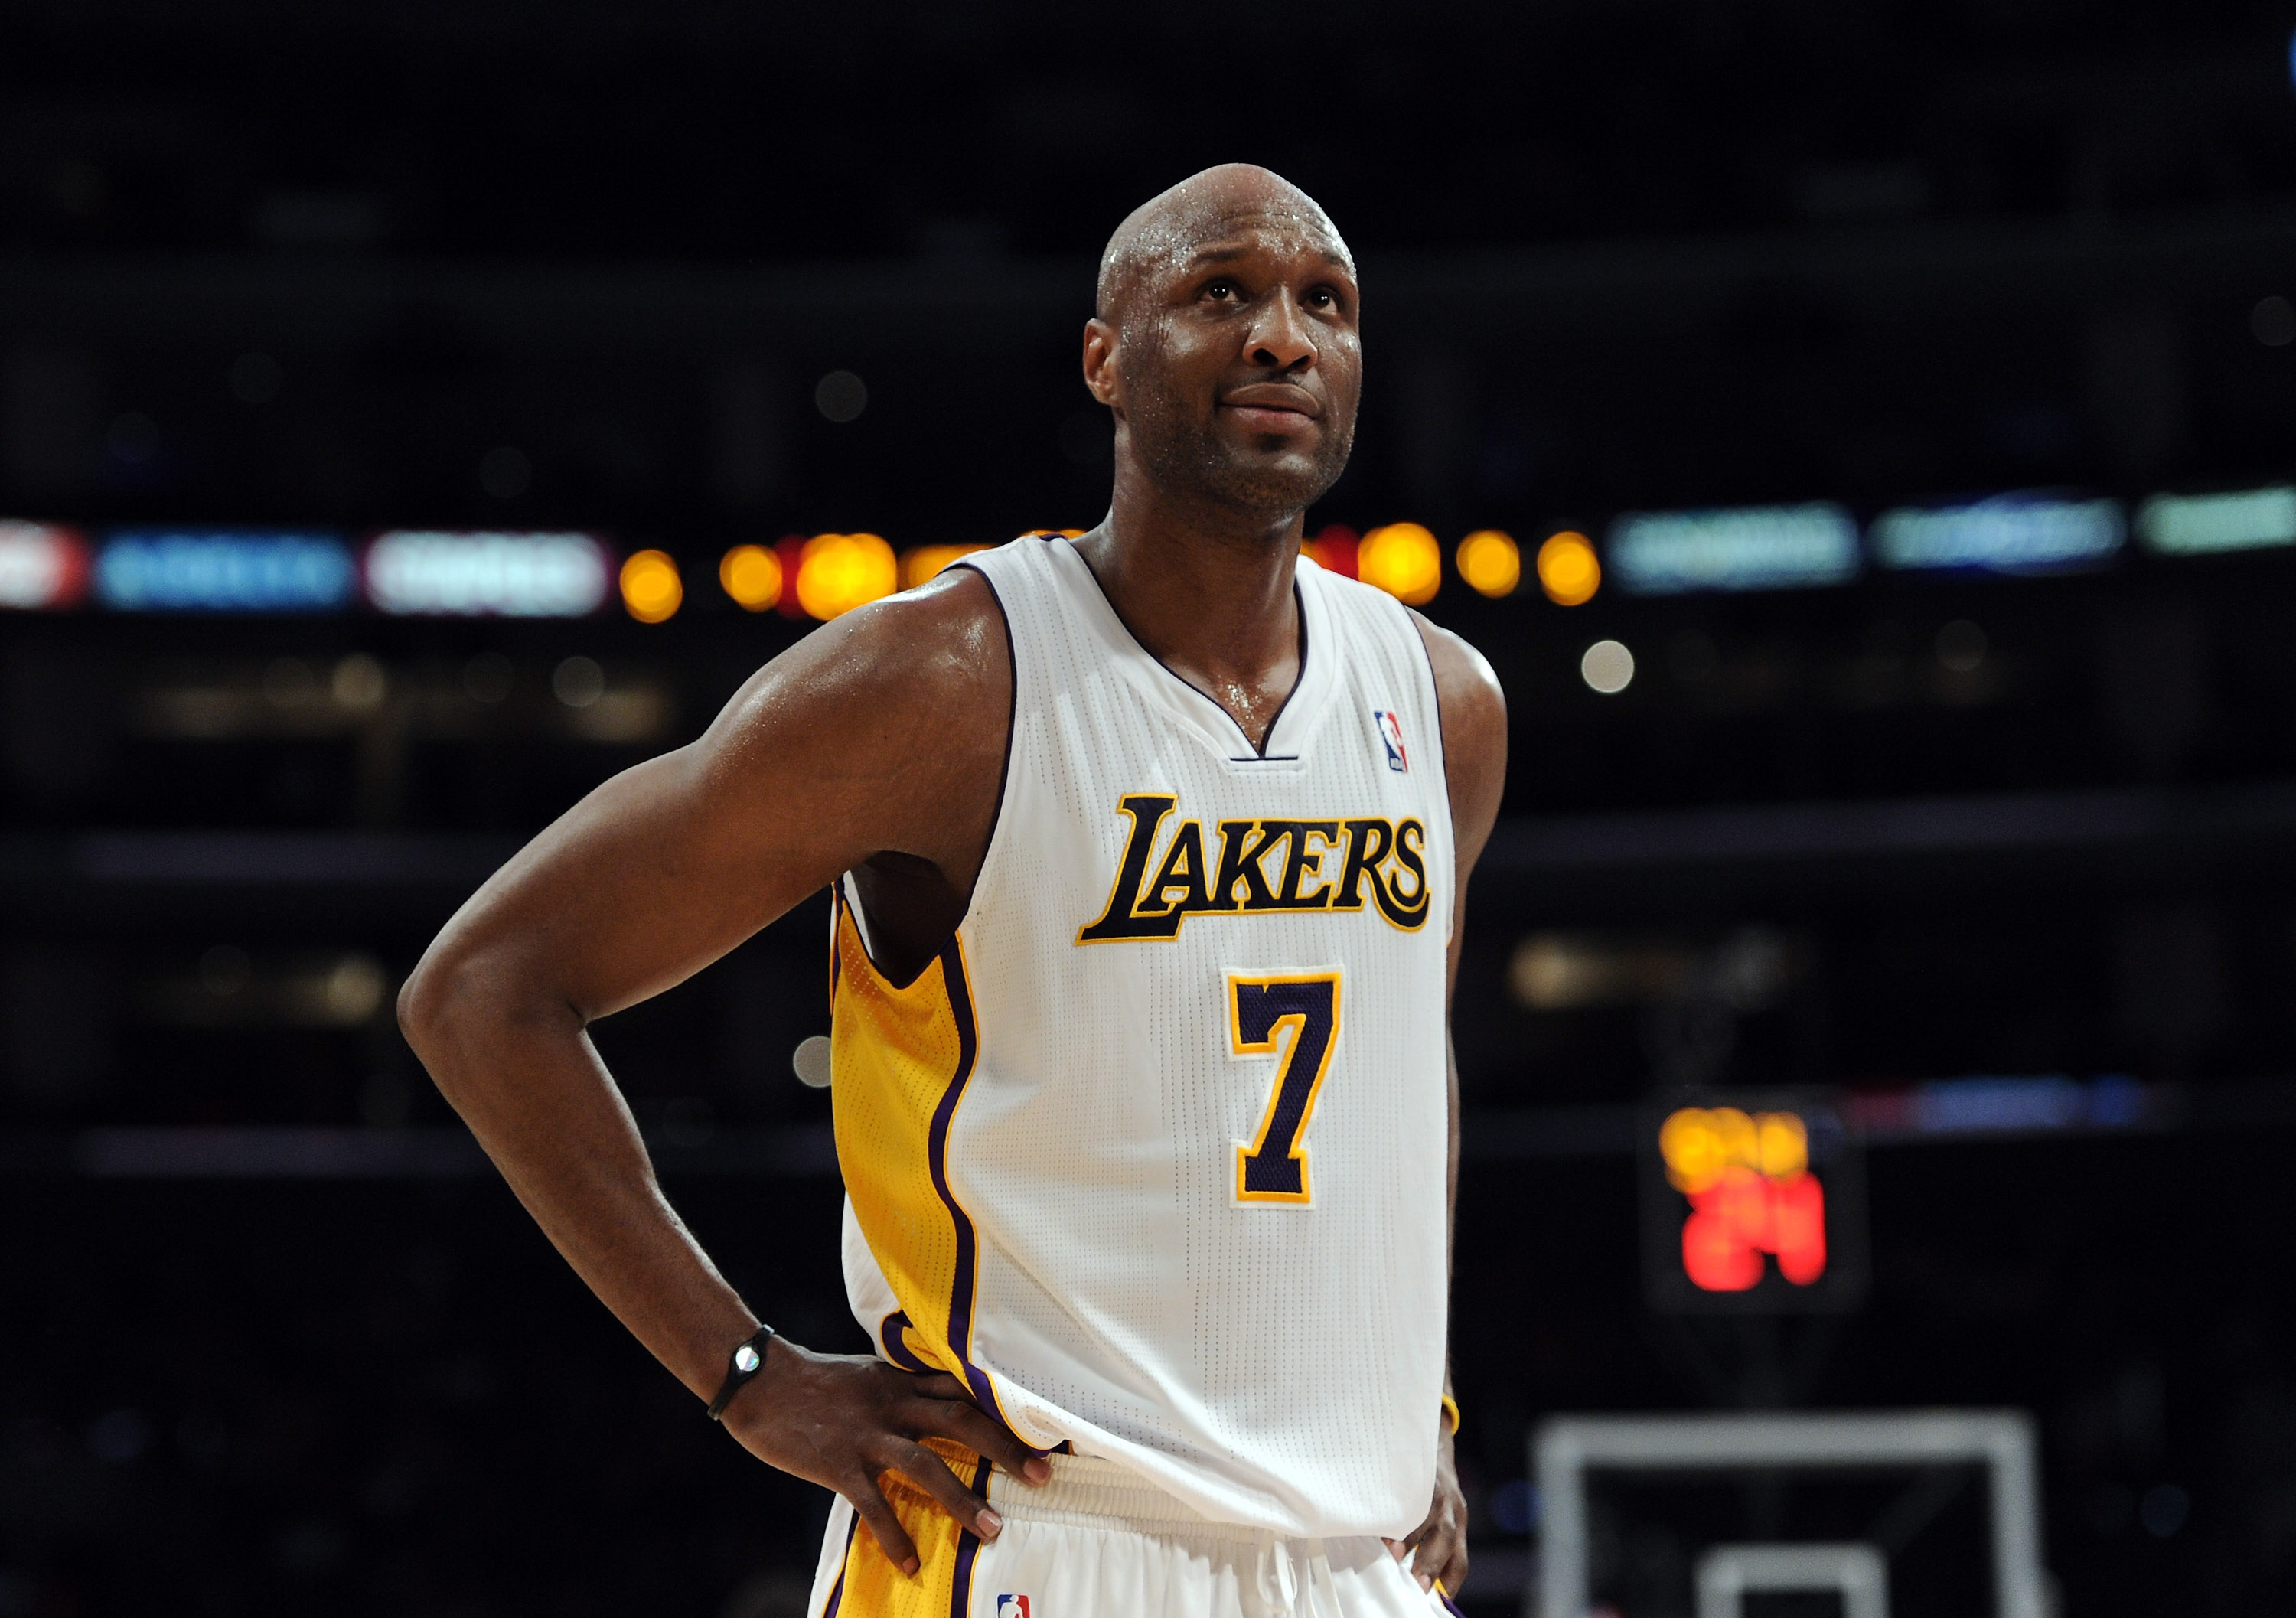 Lamar Odom #7 of the Los Angeles Lakers reacts as his team is called for a foul during the game against the Portland Trail Blazers at the Staples Center on March 20, 2011, in Los Angeles, California. (Getty Images)